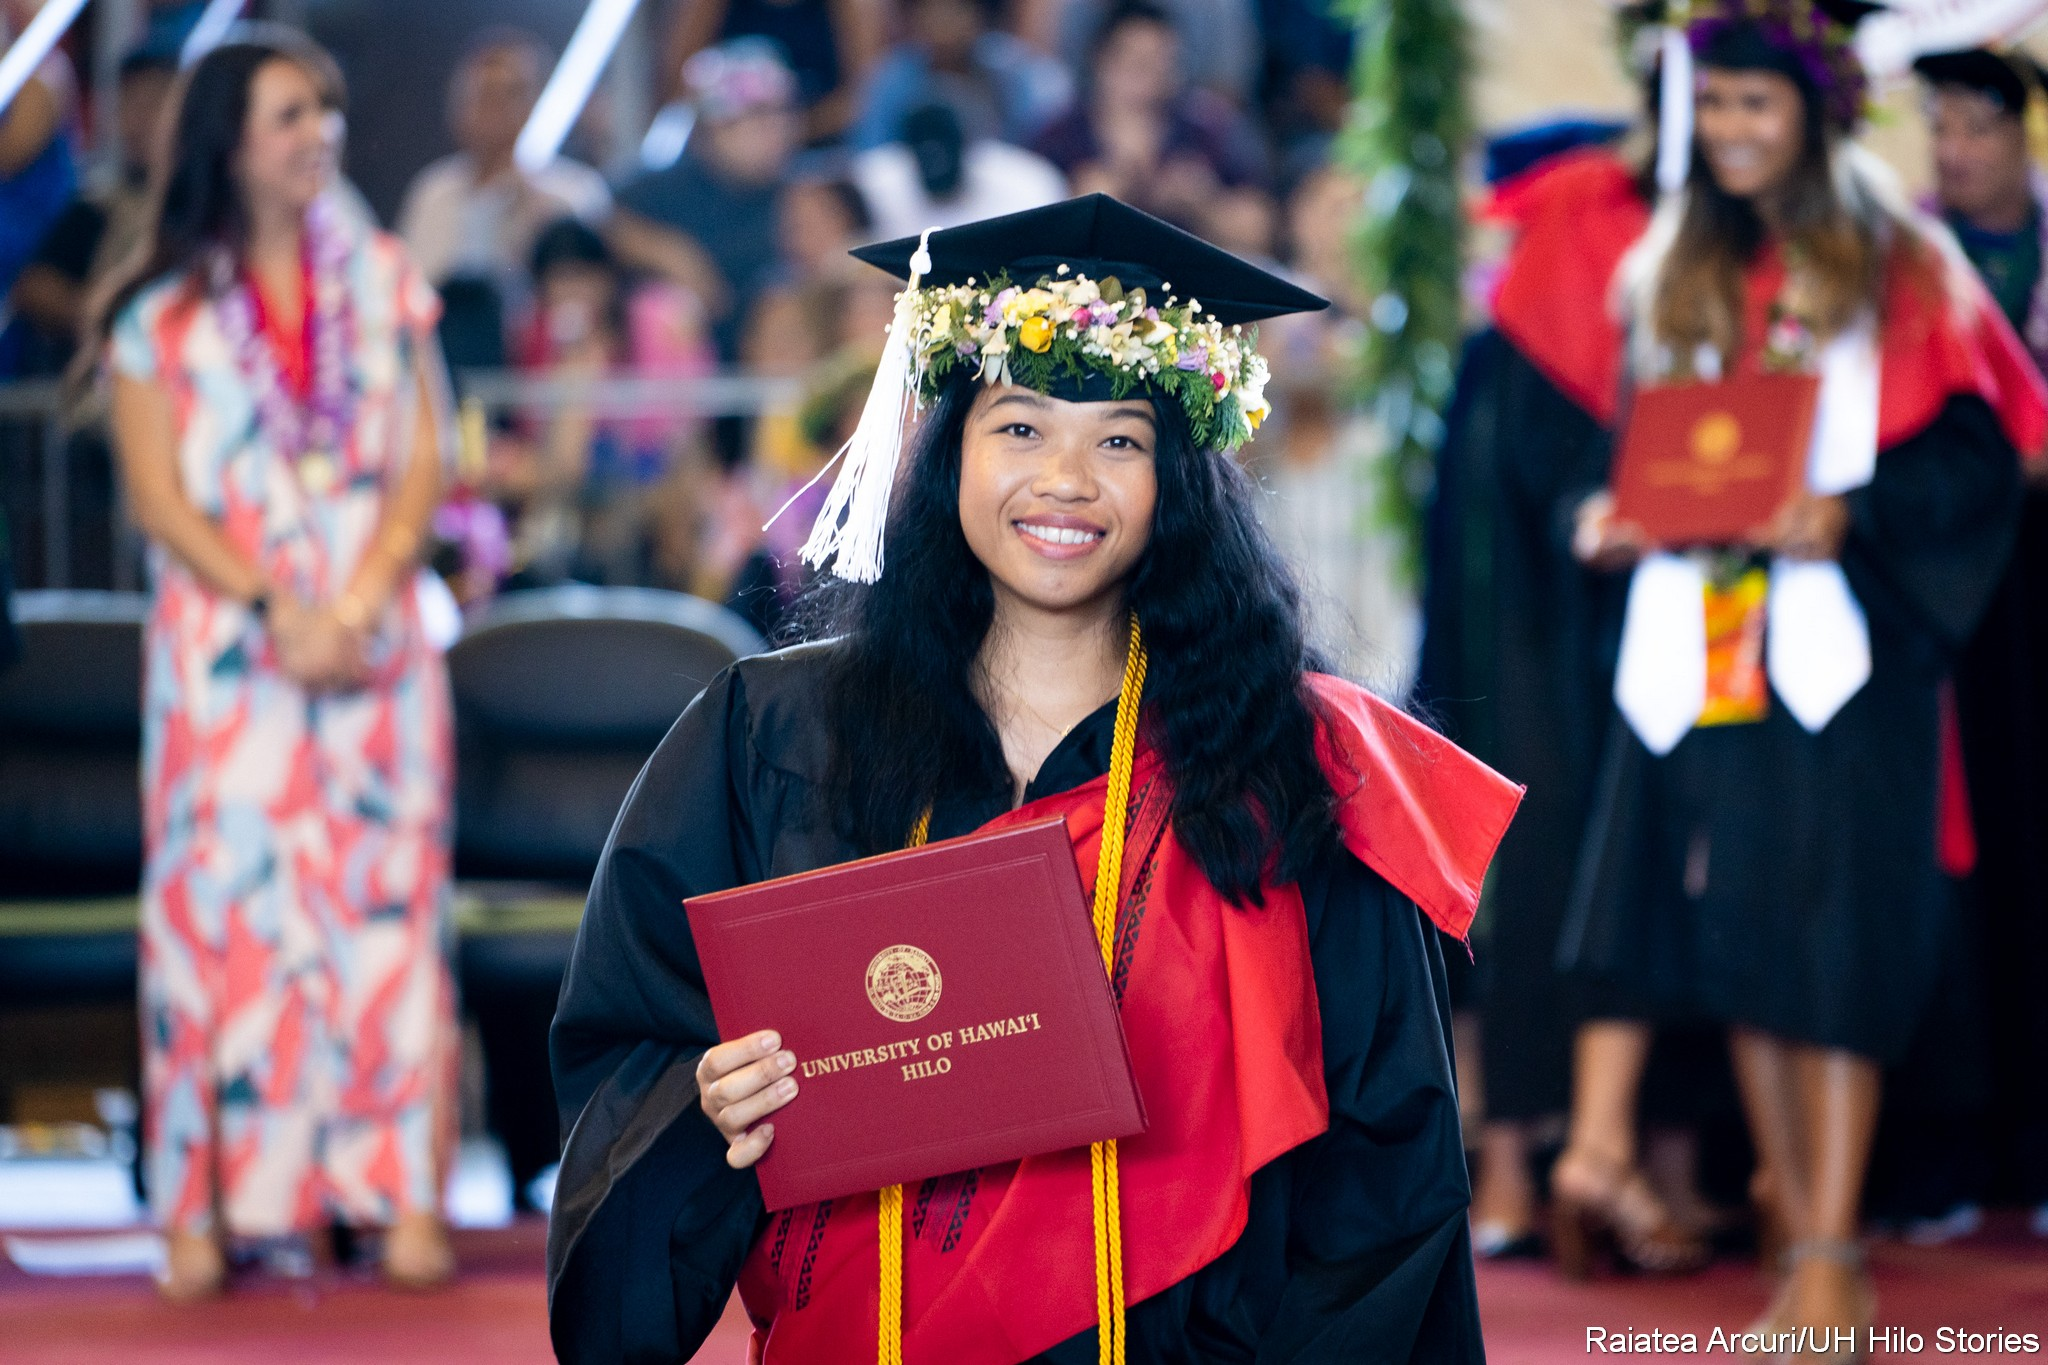 Female graduate with white head lei on cap and gold cord leaving dais with diploma, pauses for photo.